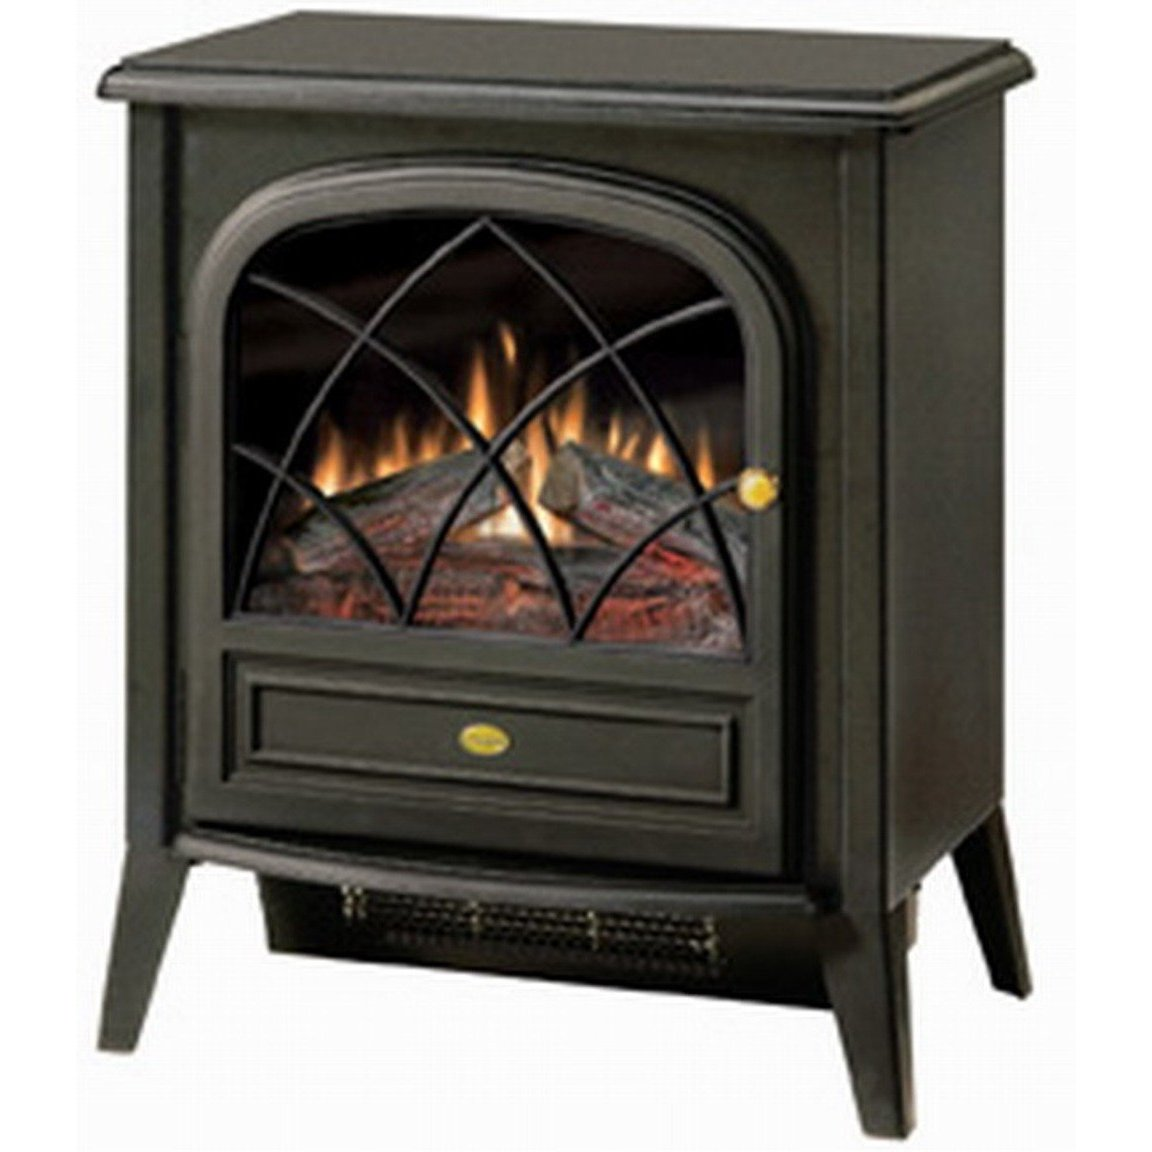 Dimplex Compact Electric Stove Patio Heater Review